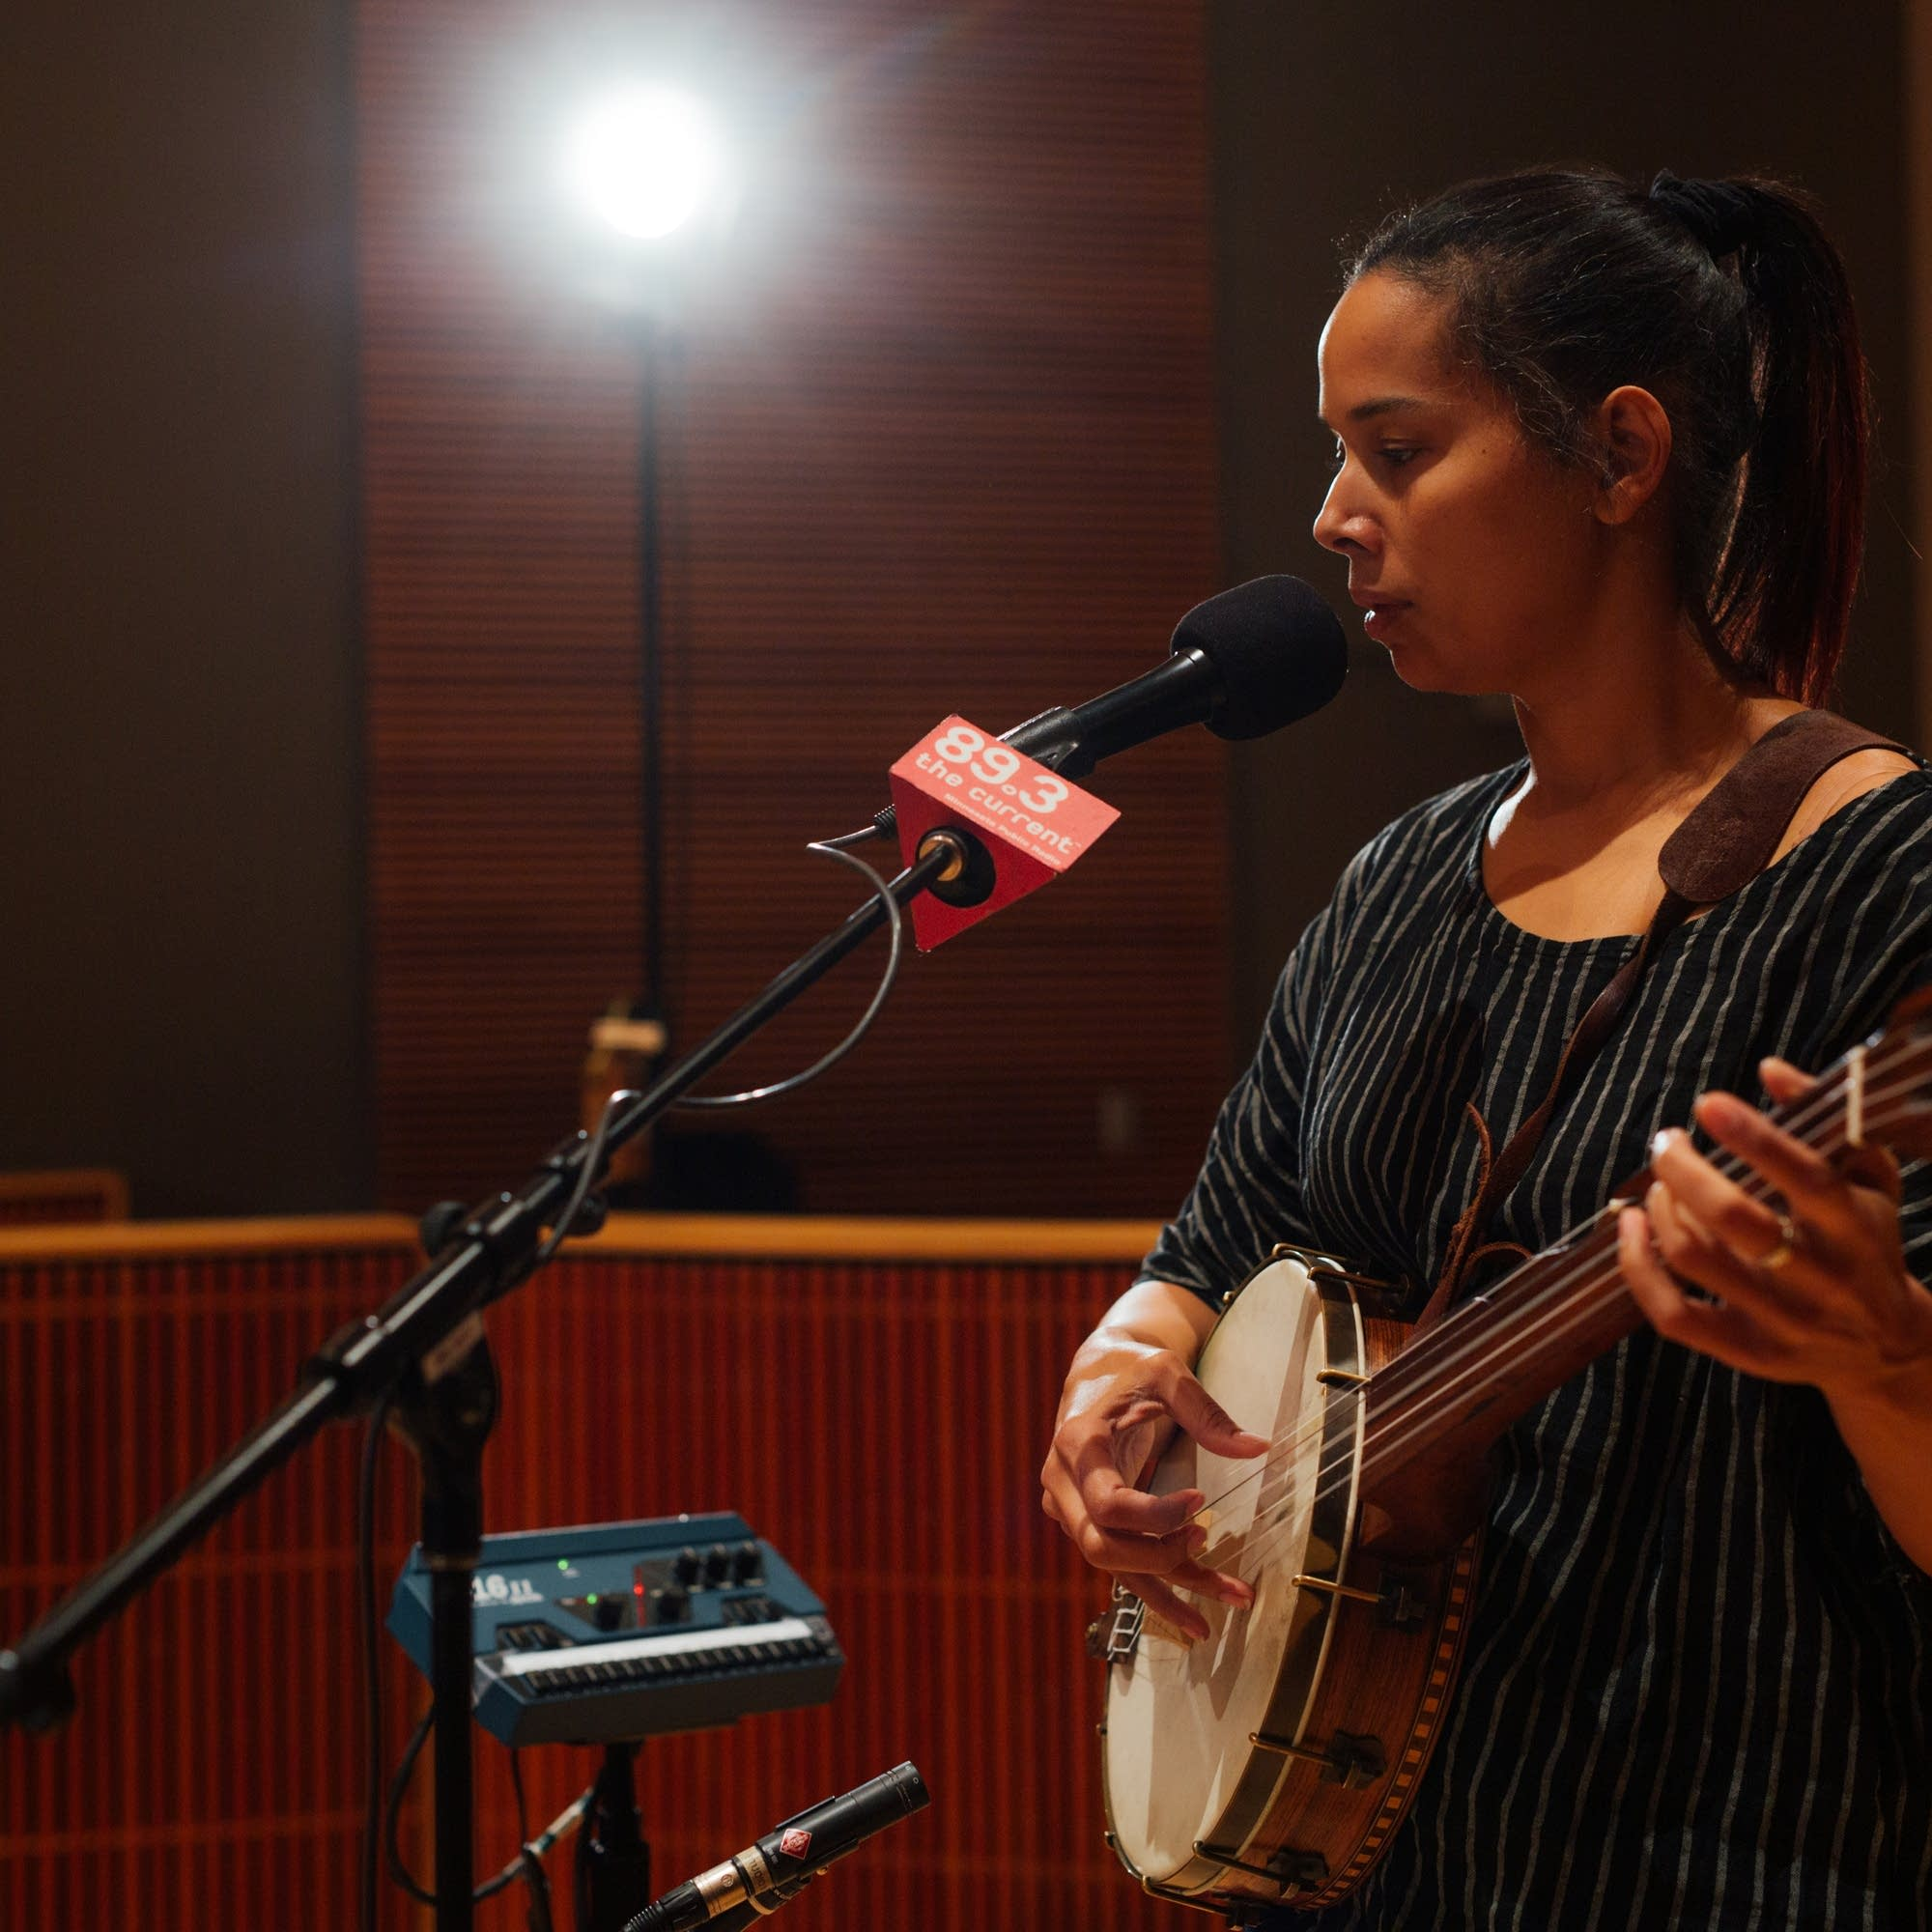 Rhiannon Giddens in The Current studio